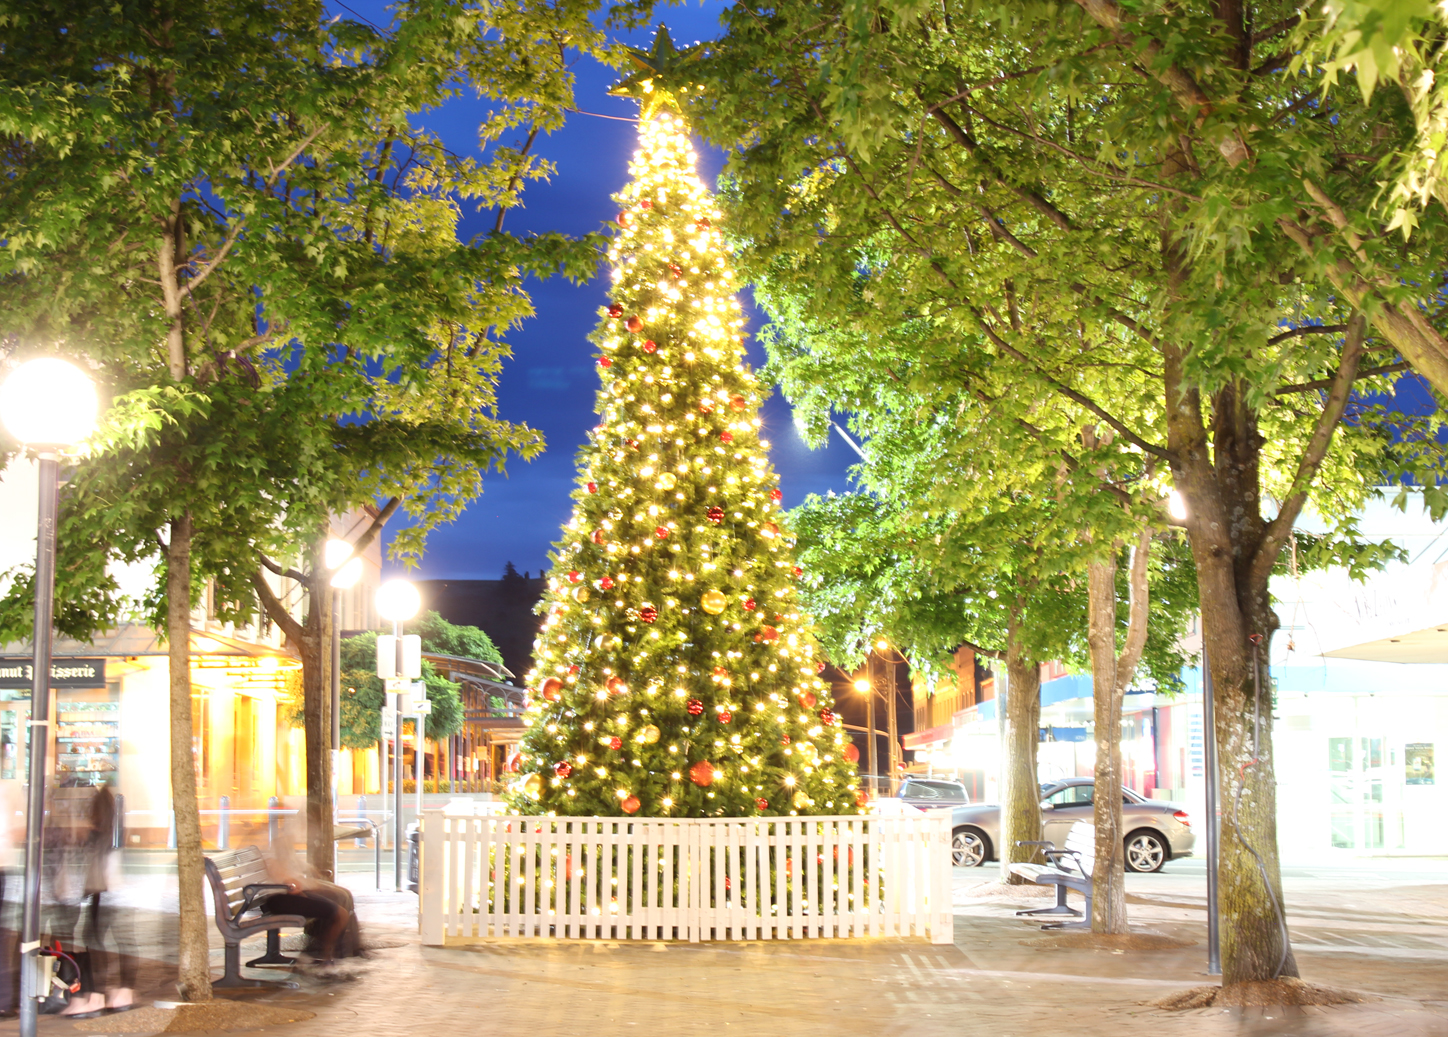 Community Christmas Tree in Bowral's Corbett Plaza